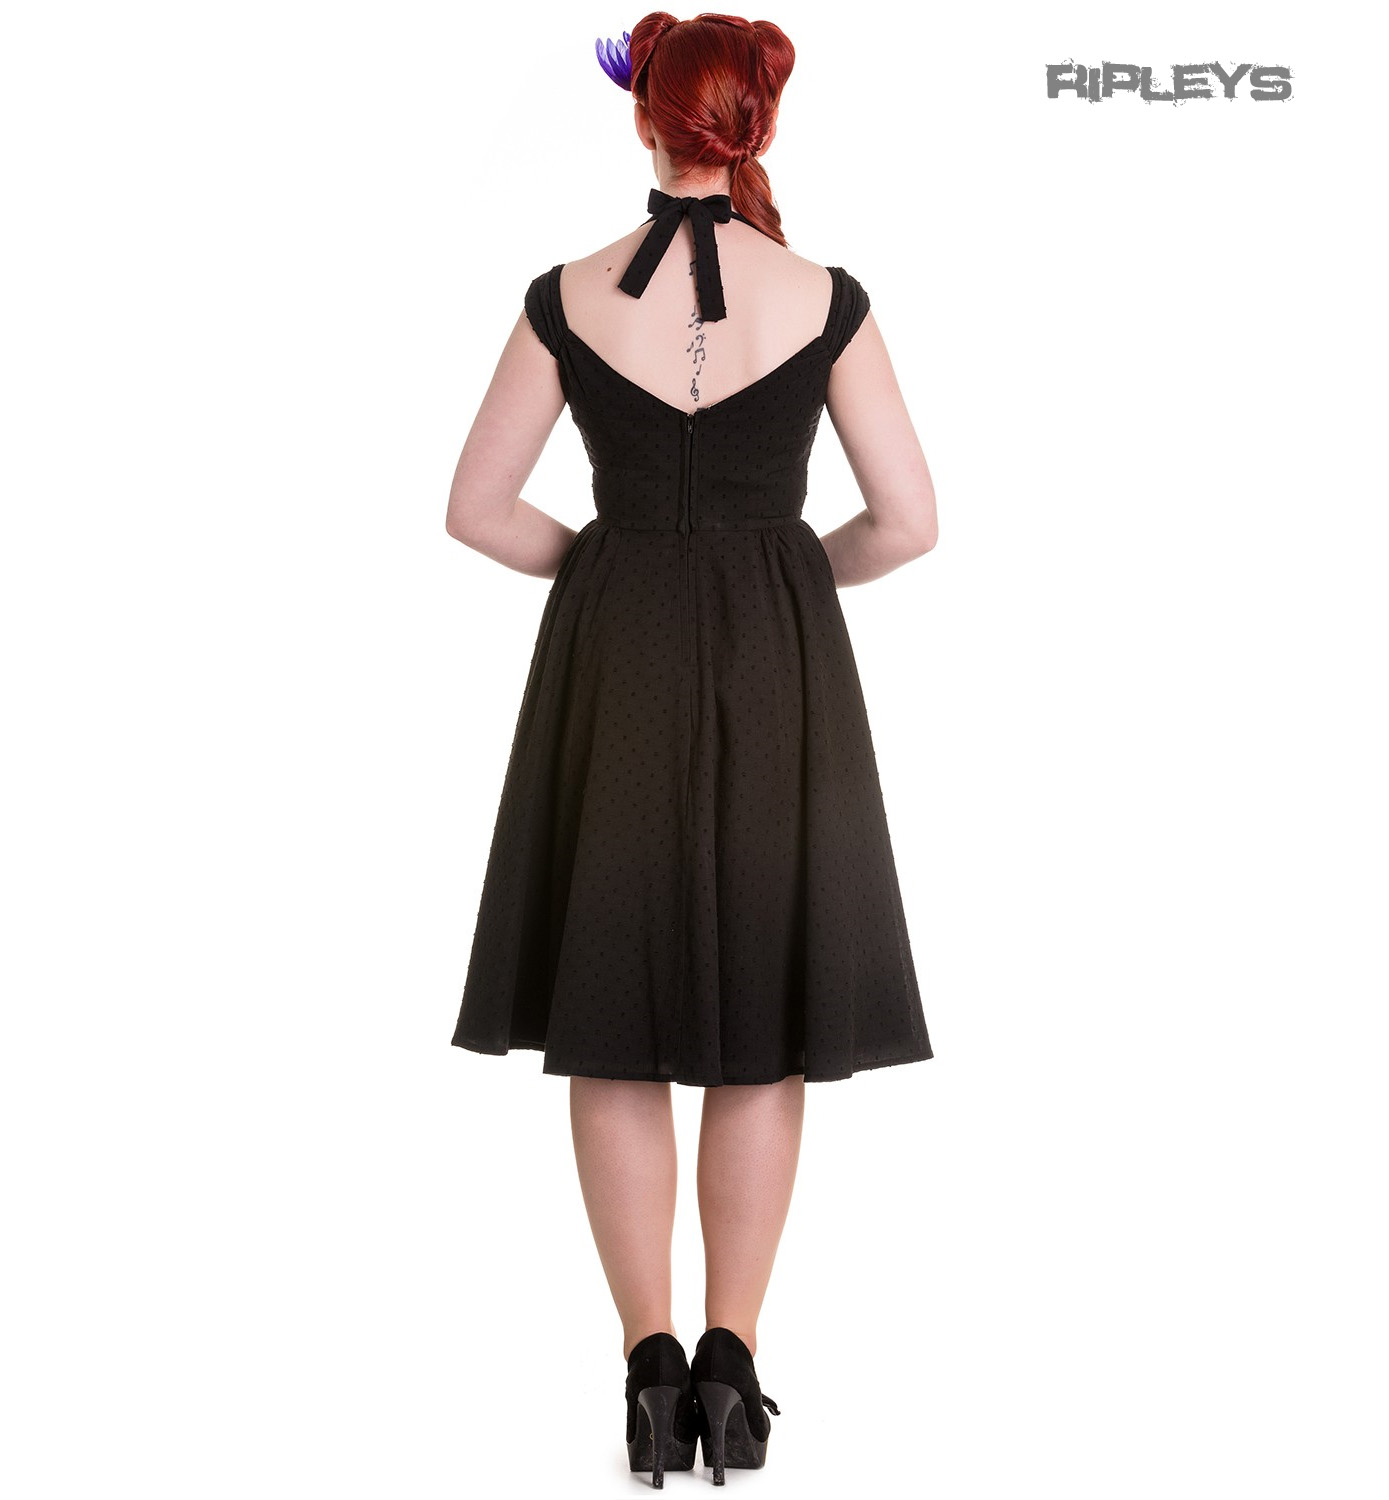 Hell-Bunny-Pin-Up-Summer-50s-Dress-Vintage-Rockabilly-EVELINE-Black-All-Sizes thumbnail 10